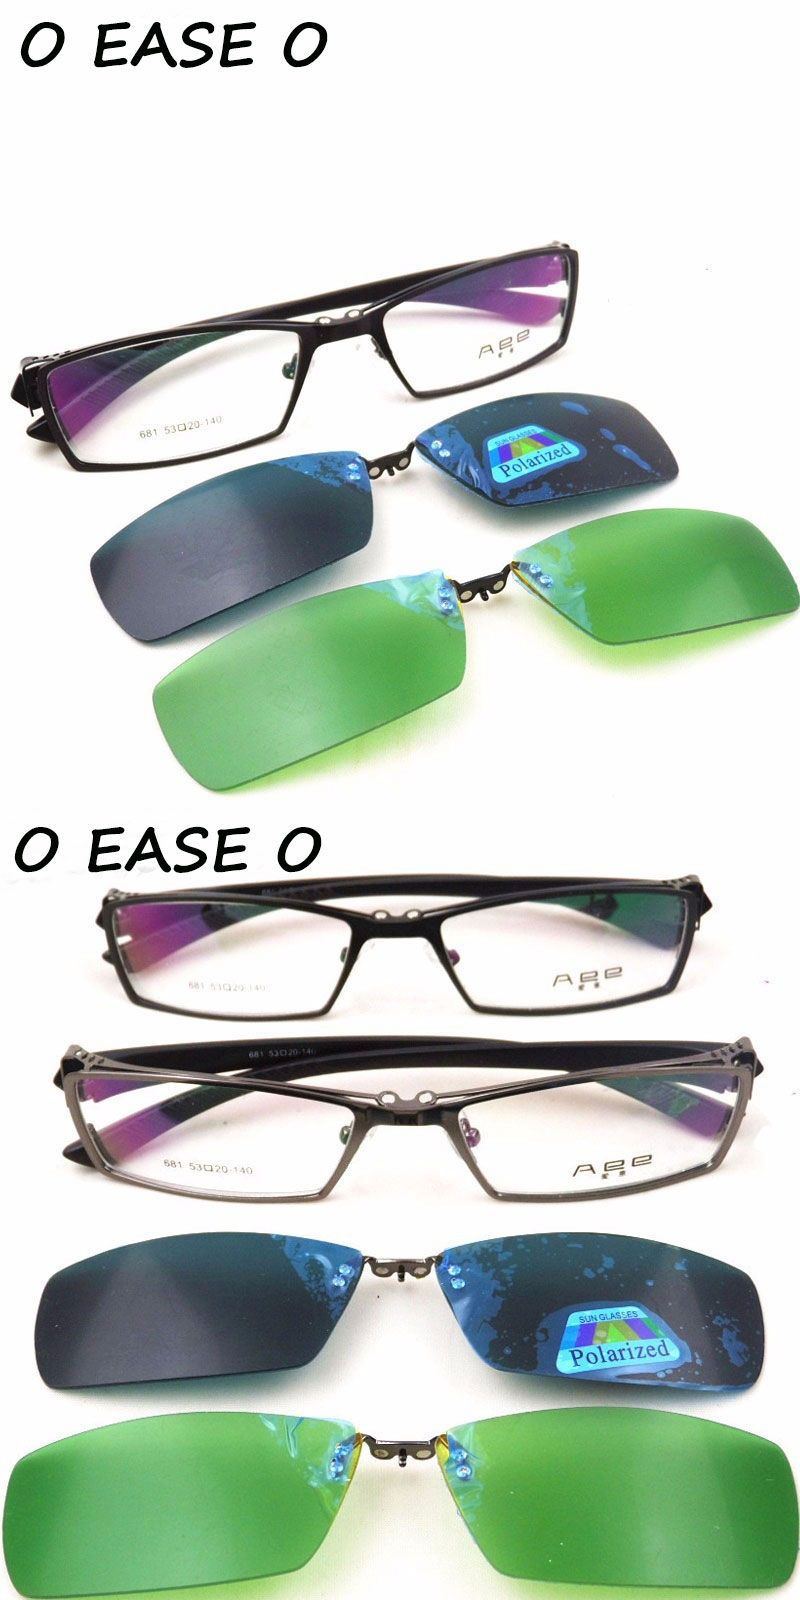 90cf9b019b 2016 Titanium Alloy Myopia Presbyopia Optical Frame With clip-on sets  Polarized Day Night Vision